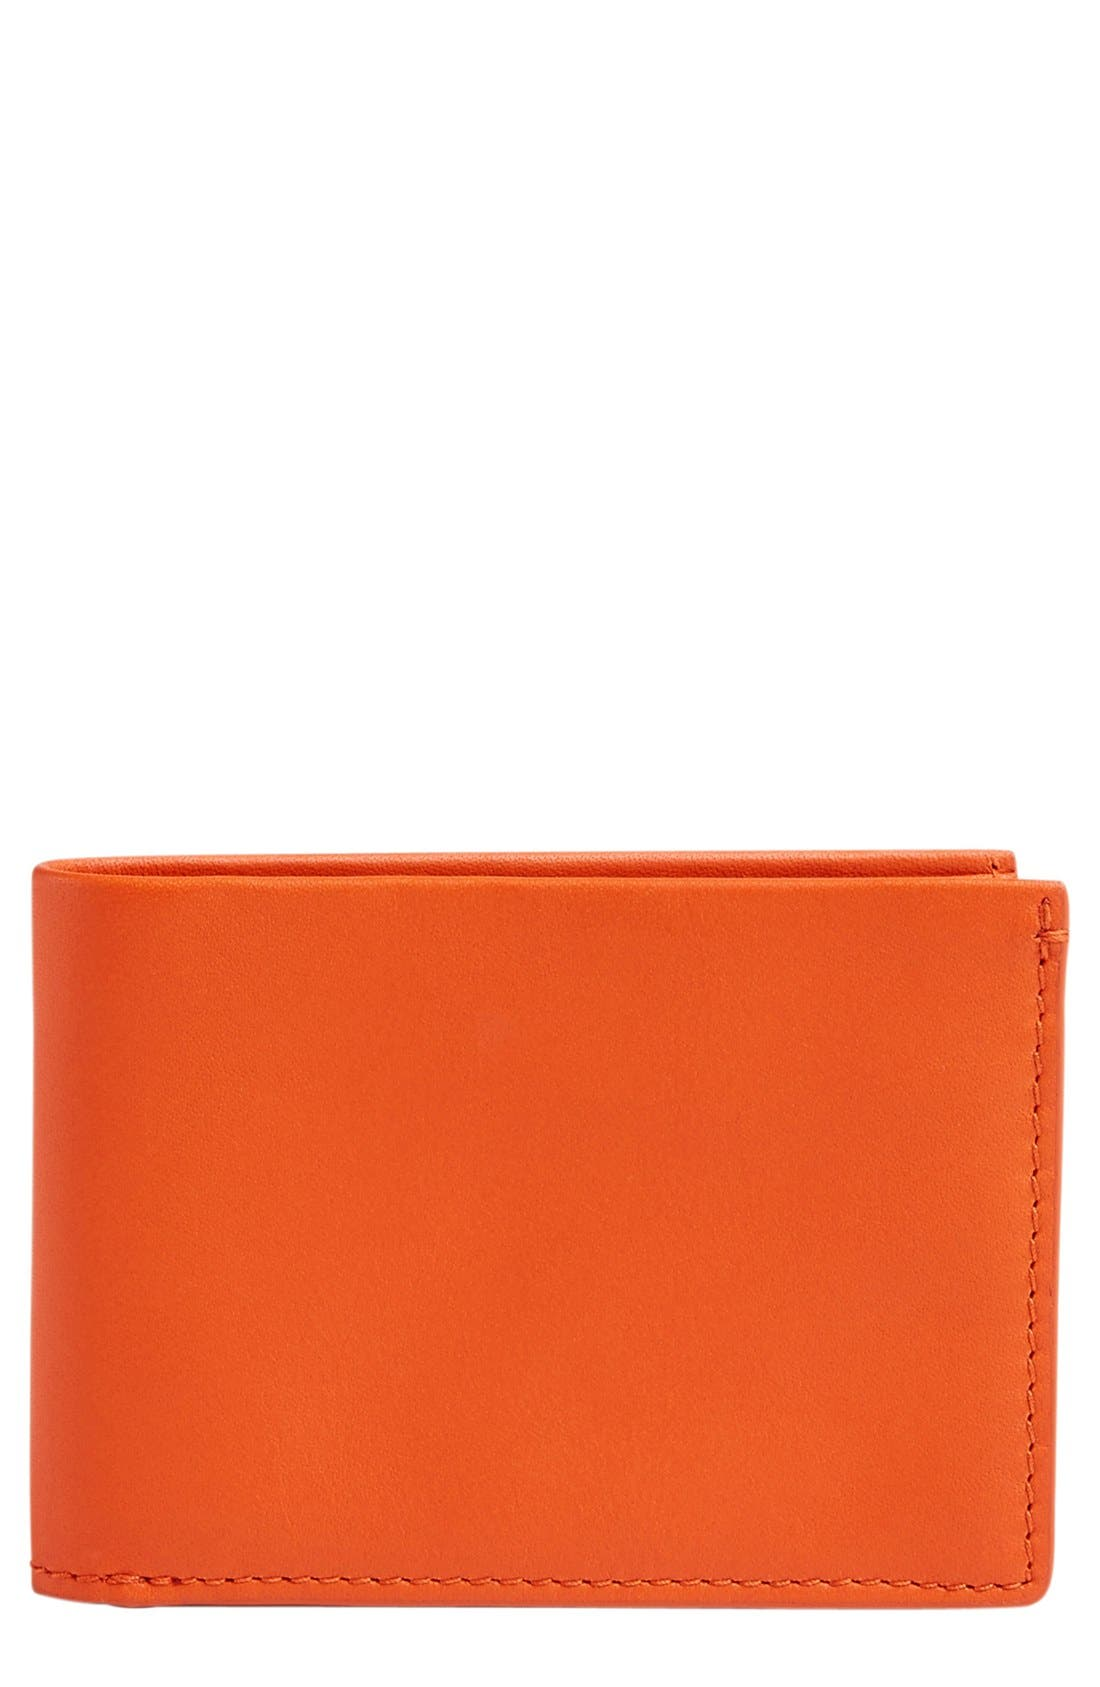 Alternate Image 1 Selected - Skagen 'Ambold' Leather Wallet